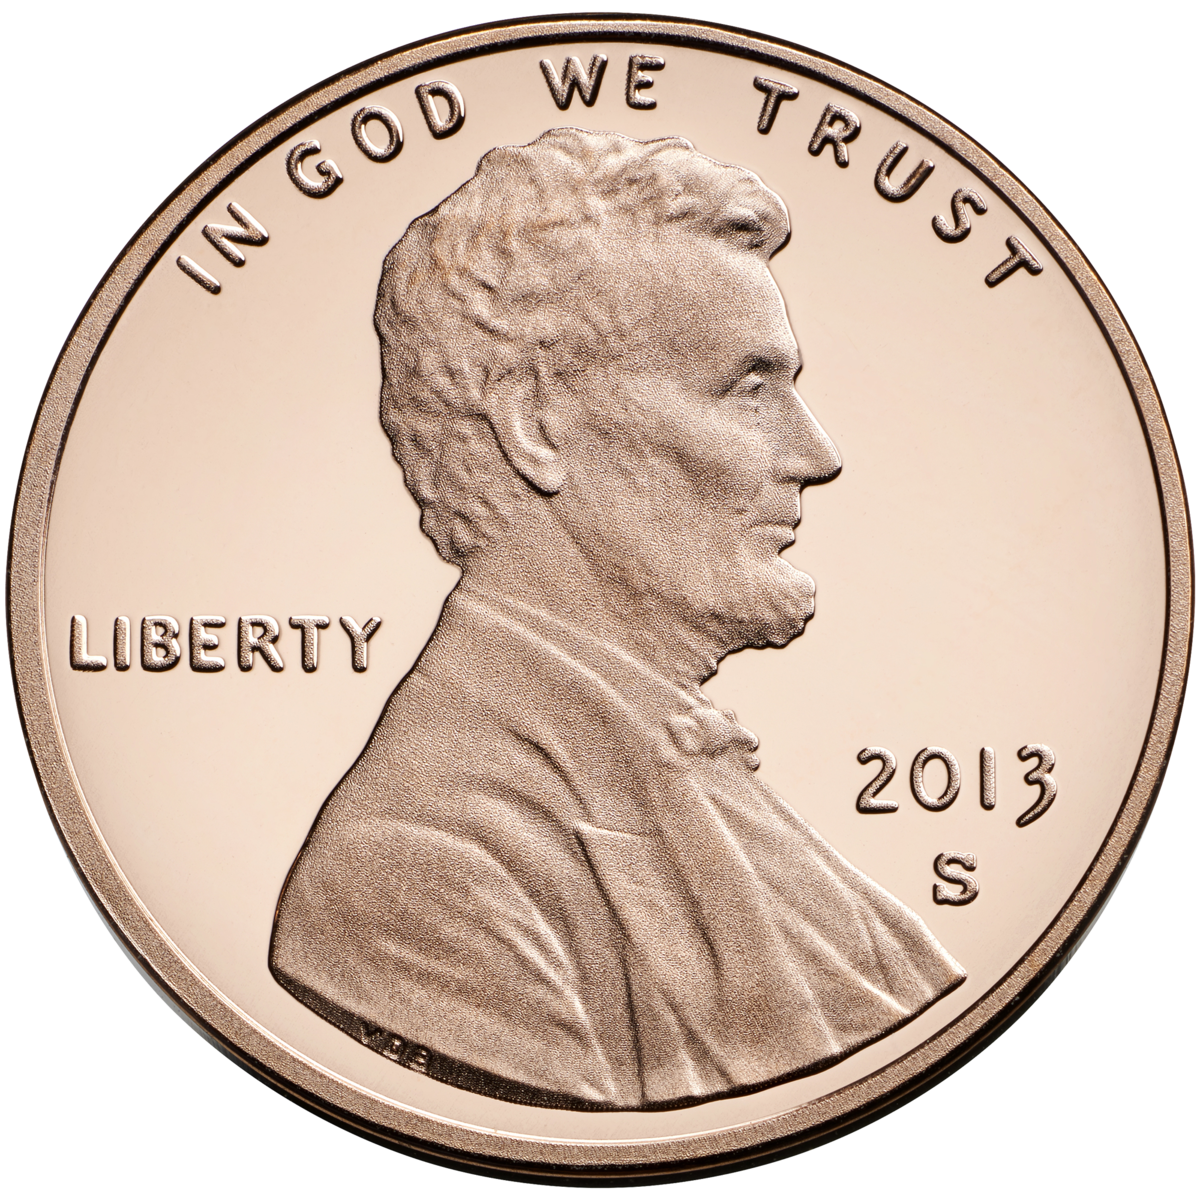 1 dollar bill annuit coeptis frame png. Lincoln cent wikipedia